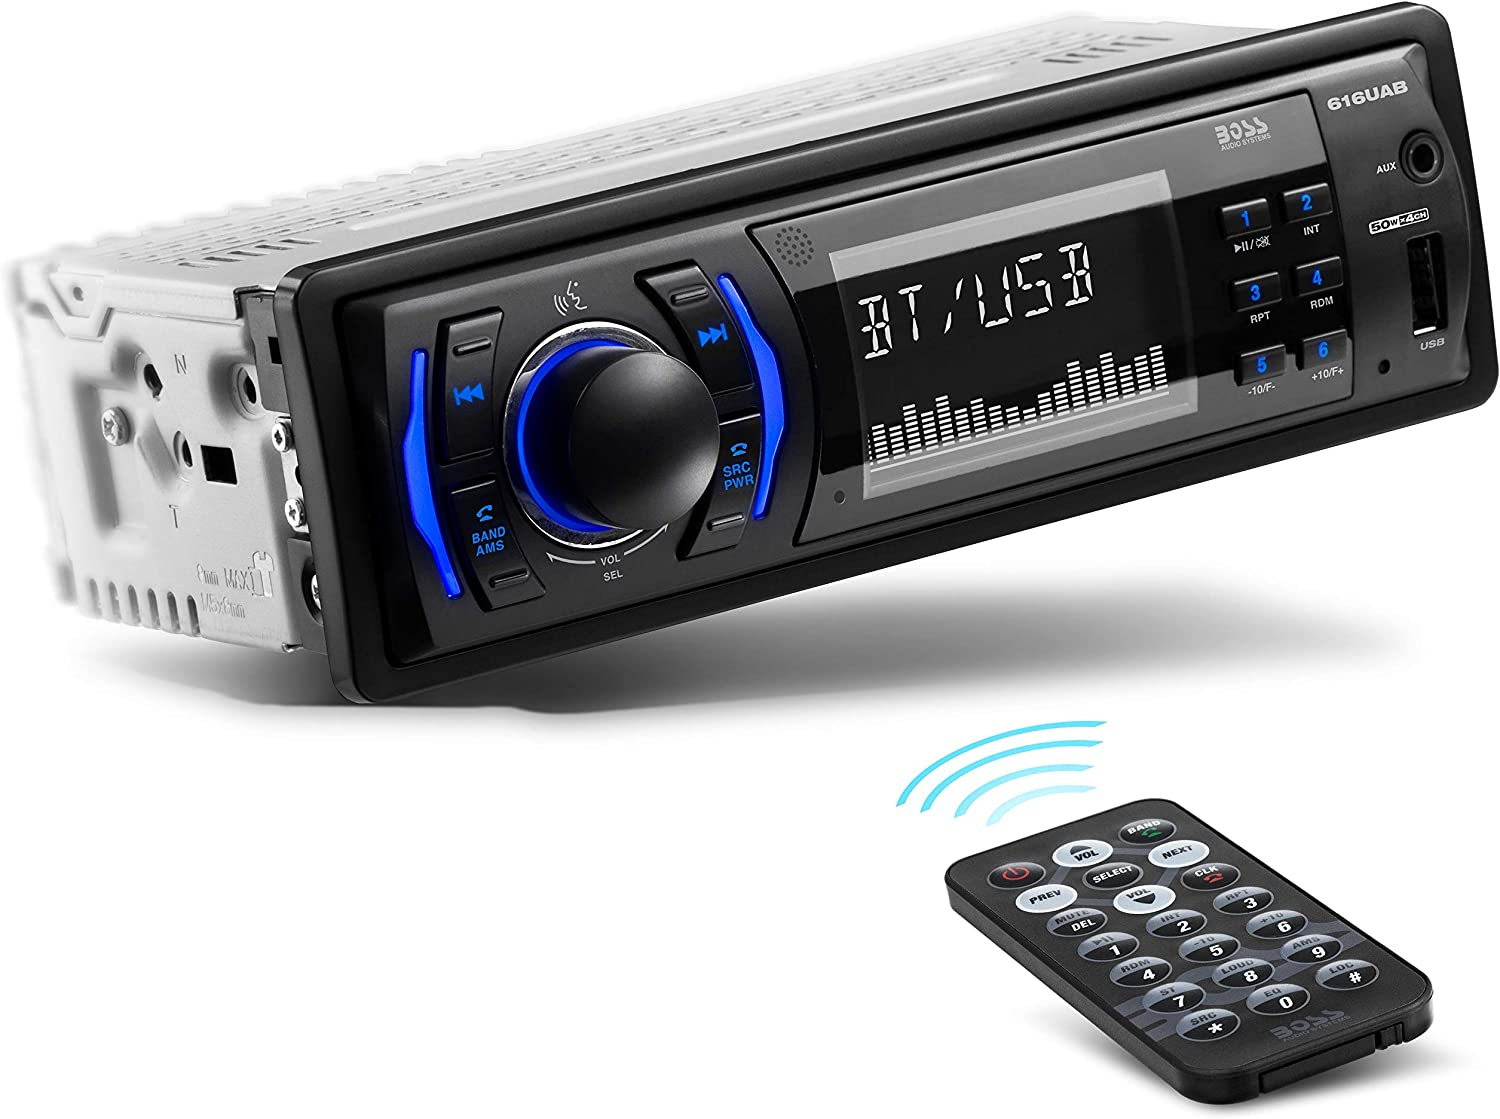 Amazon.com: BOSS Audio Systems 616UAB Multimedia Car Stereo - Single Din  LCD Bluetooth Audio and Hands-Free Calling, Built-in Microphone, MP3/USB,  Aux-in, AM/FM Radio Receiver: Car ElectronicsAmazon.com